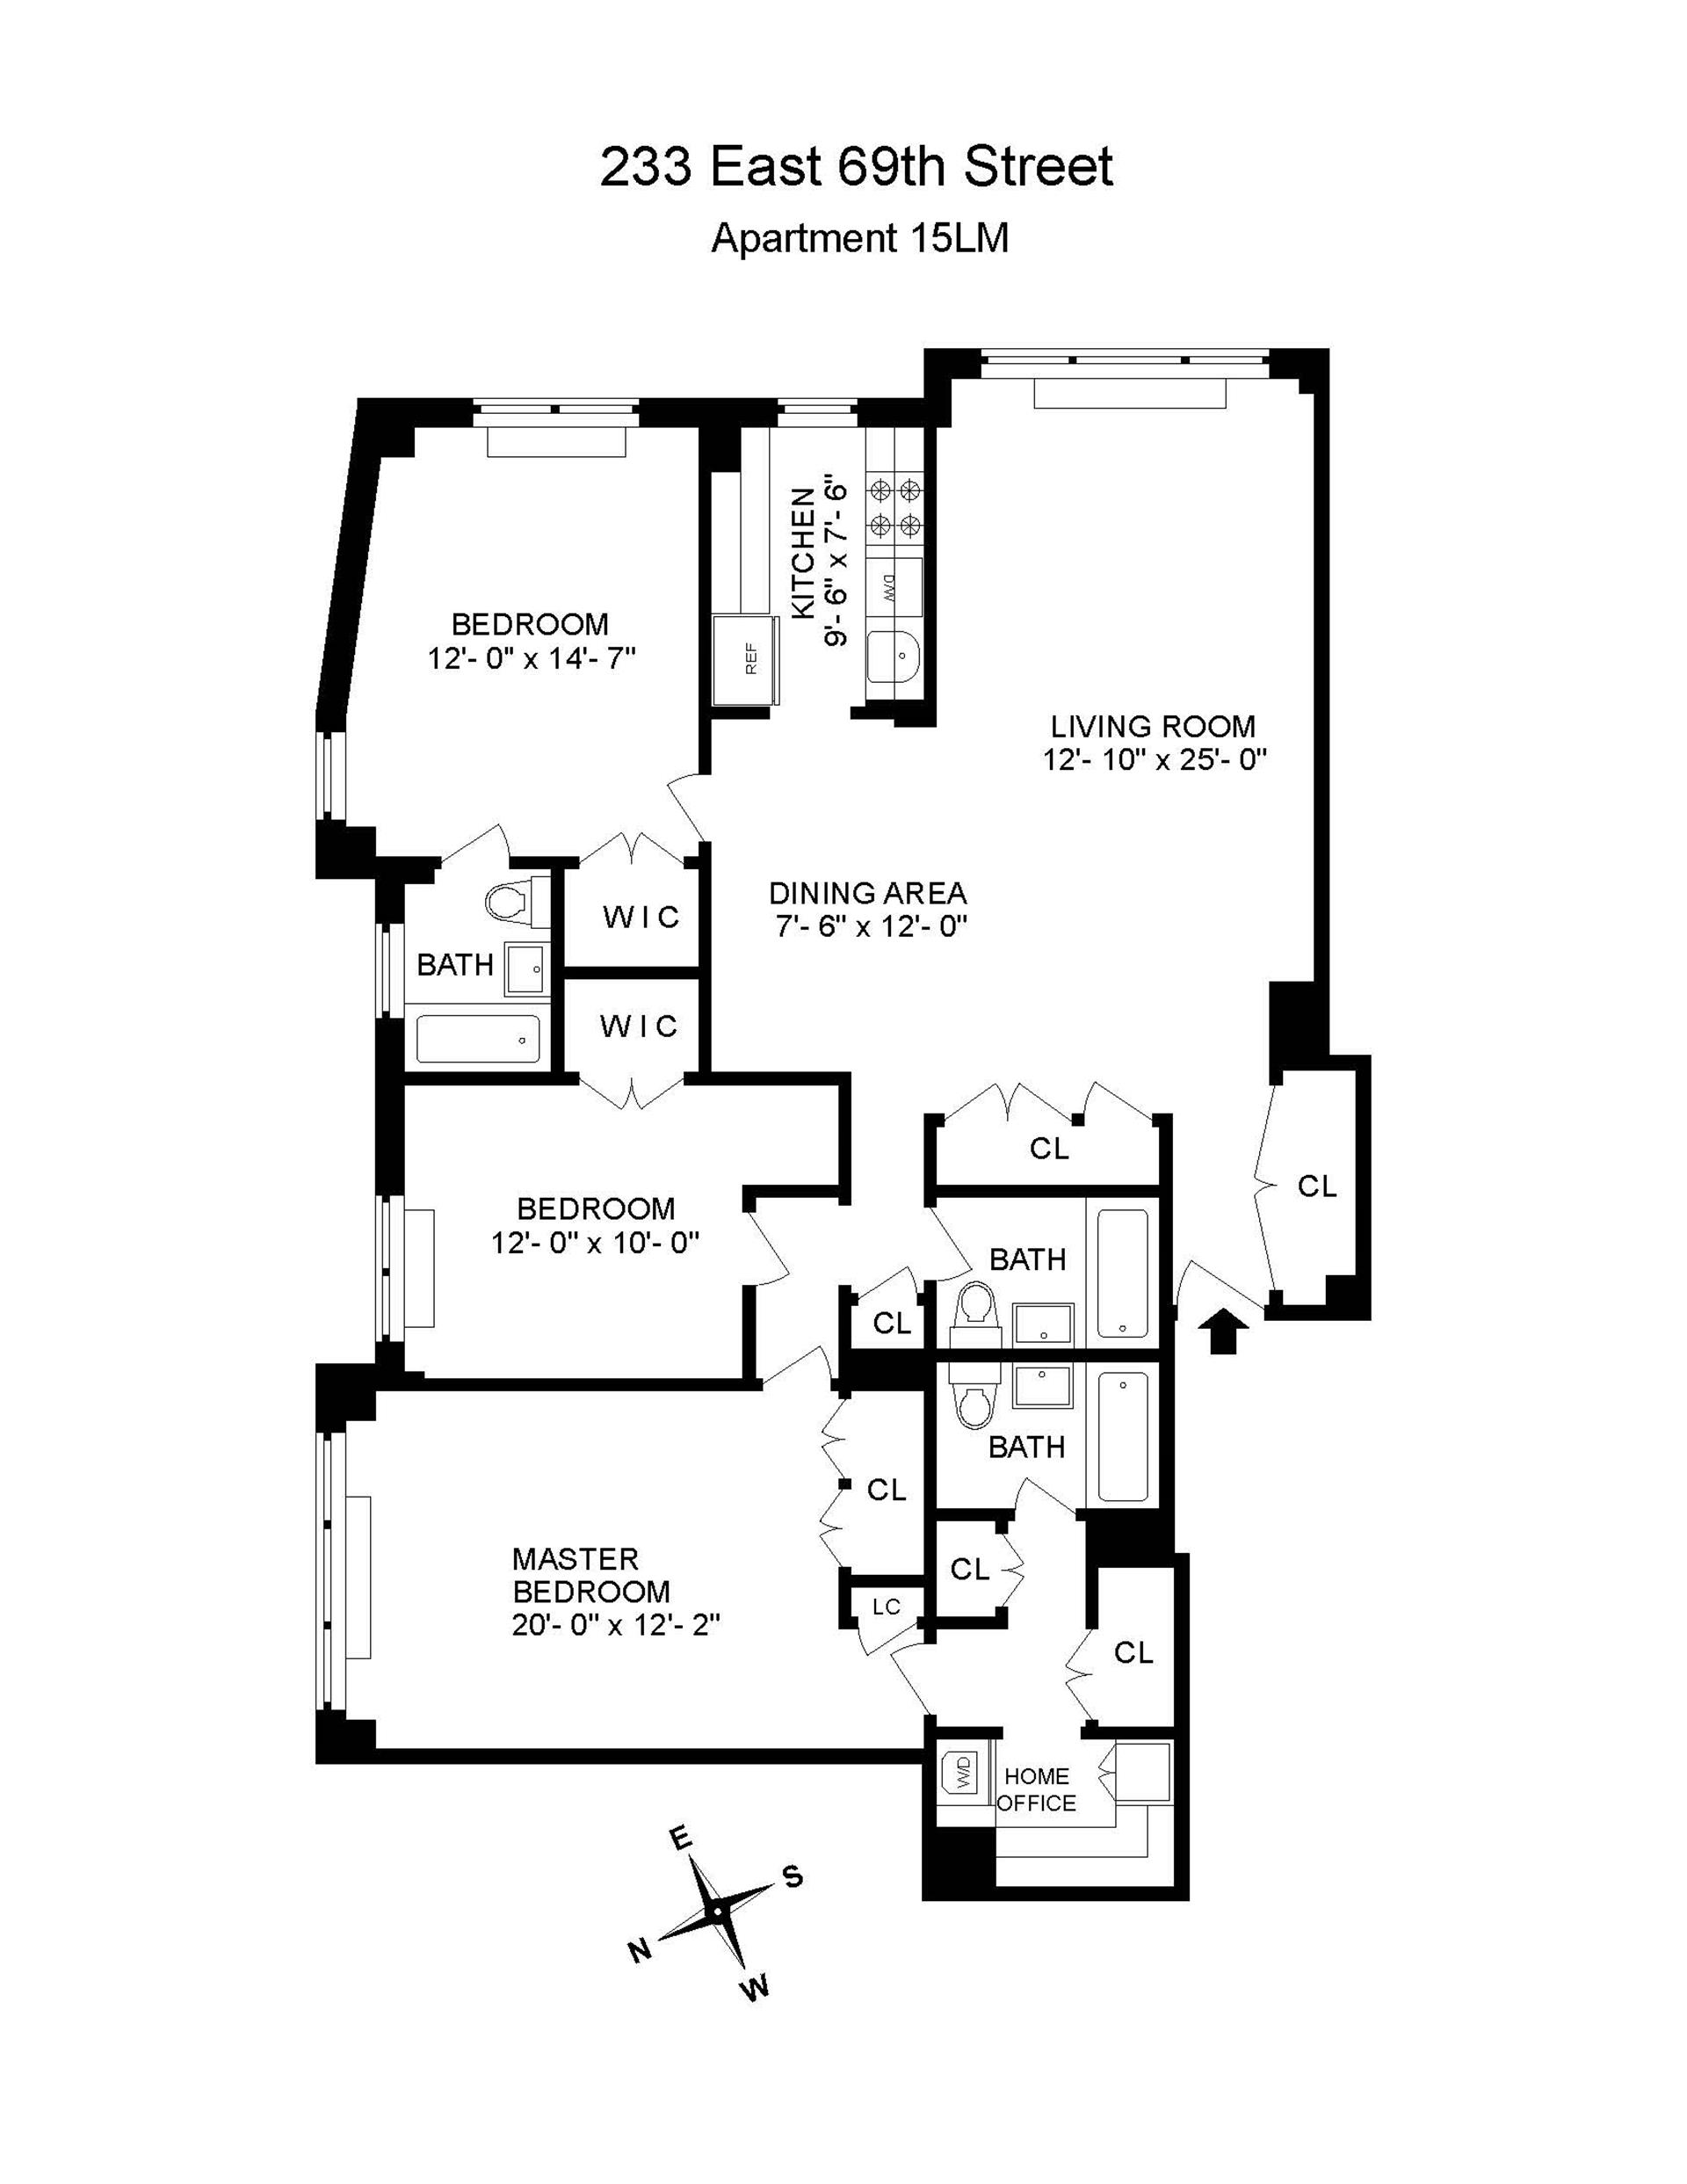 Floor plan of 233 East 69th Street, 15LM - Upper East Side, New York